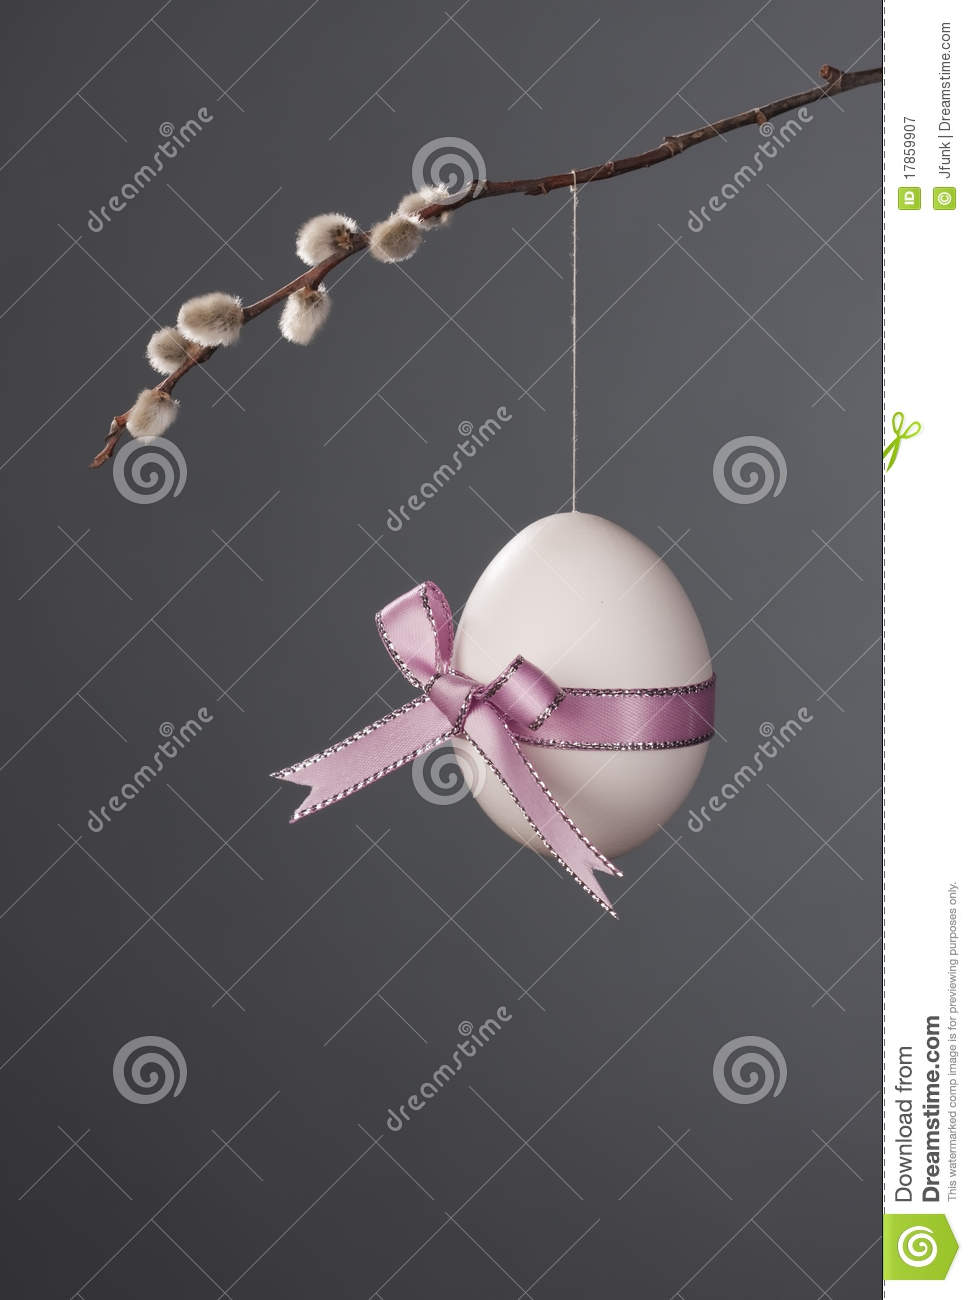 Easter Egg with Pink Bow